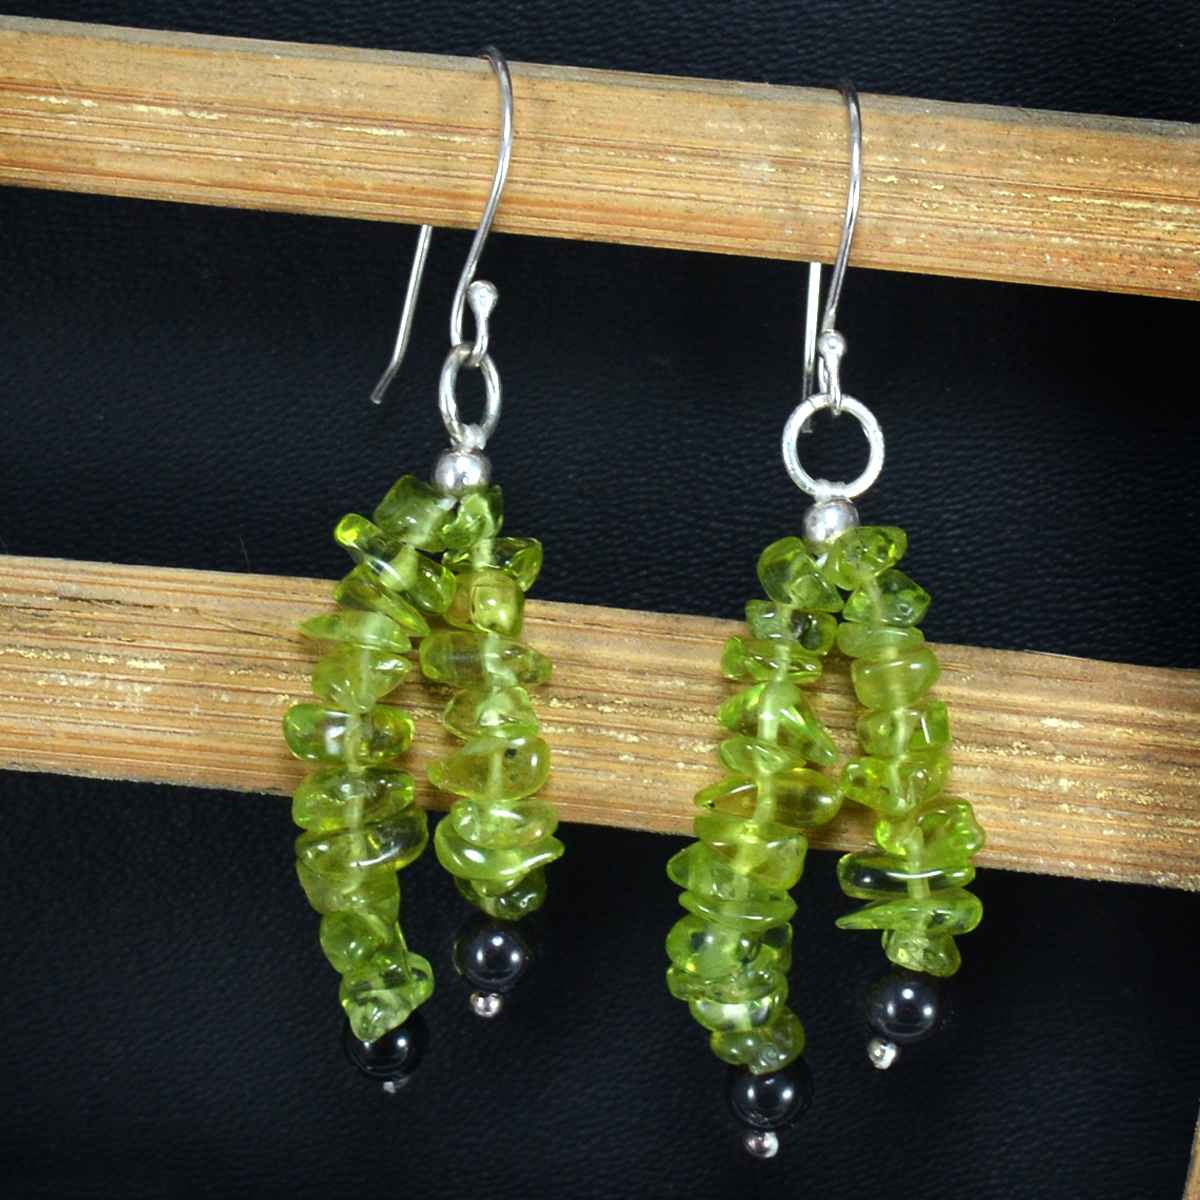 Round Bead Black Onyx, Handmade Jewelry Manufacturer Chips Peridot, 925 Sterling Silver Jaipur Rajasthan India 2-Layer Earring